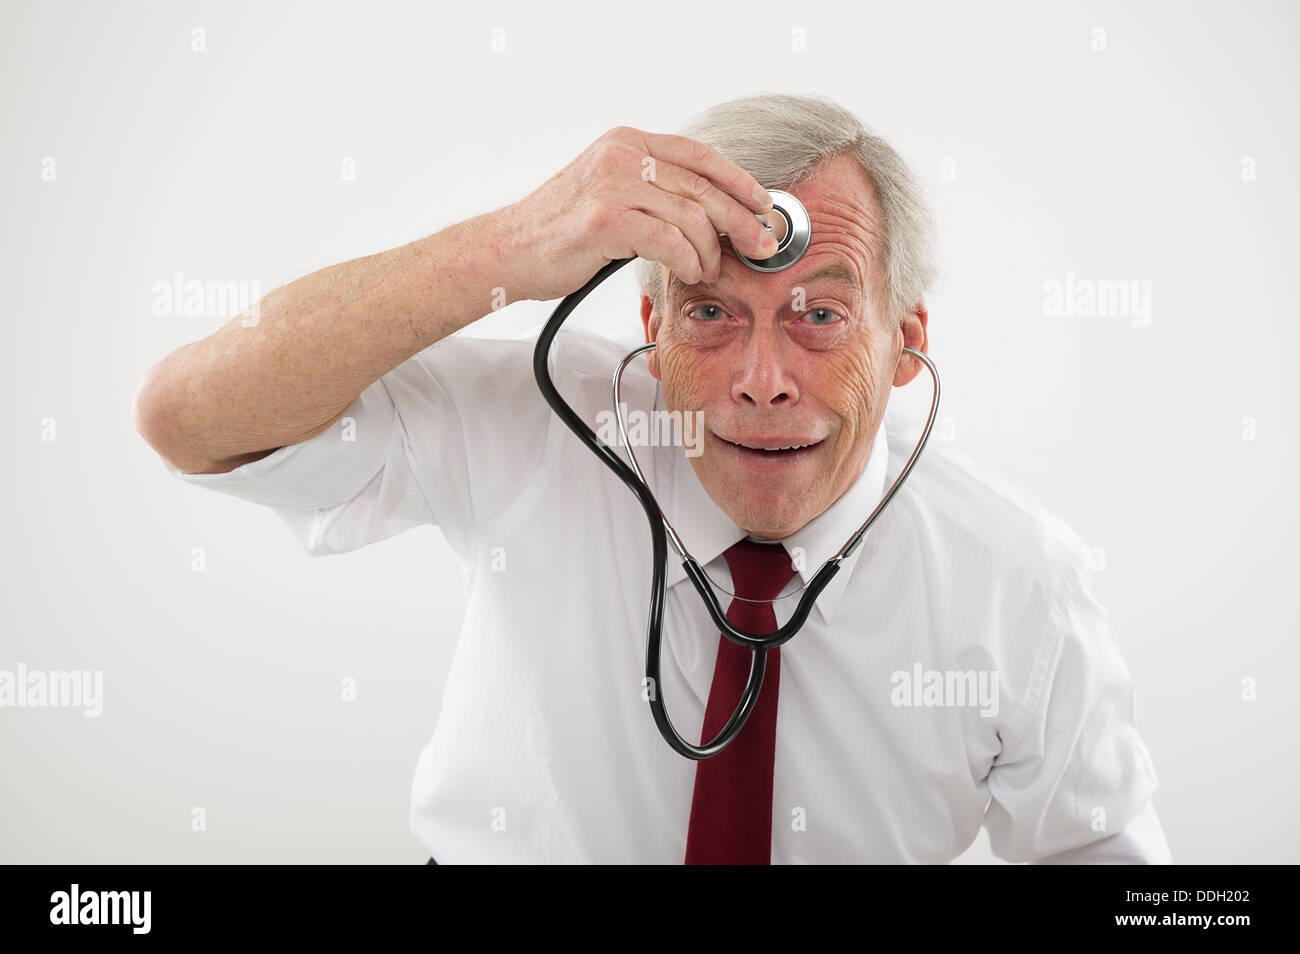 Senior man holding a stethosope to his forehead - Stock Image